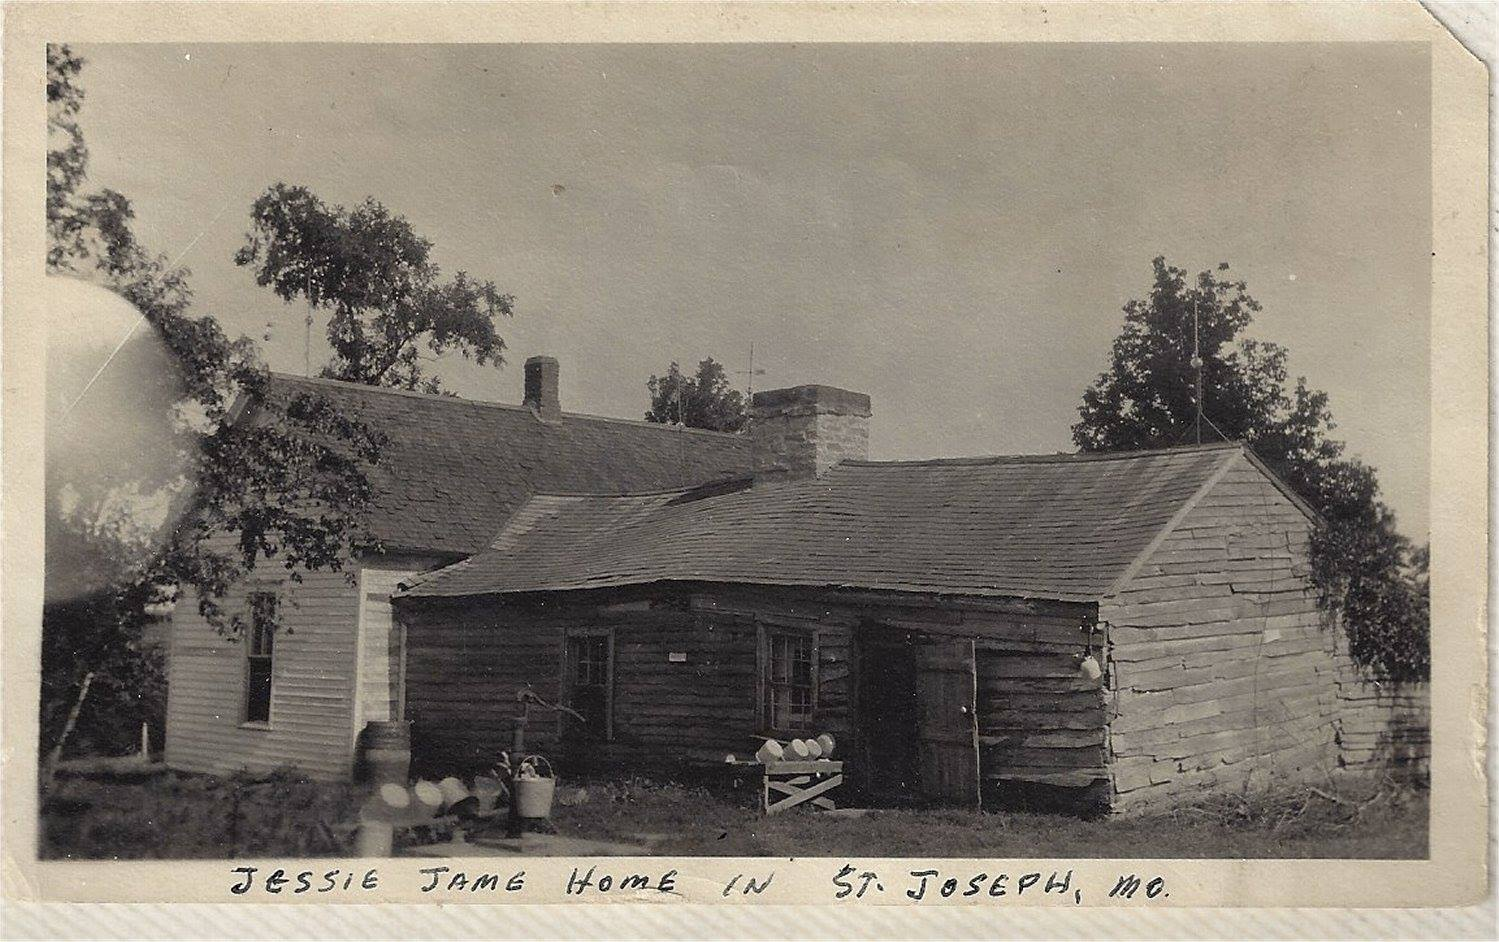 Jesse James Home in  St. Joseph Mo